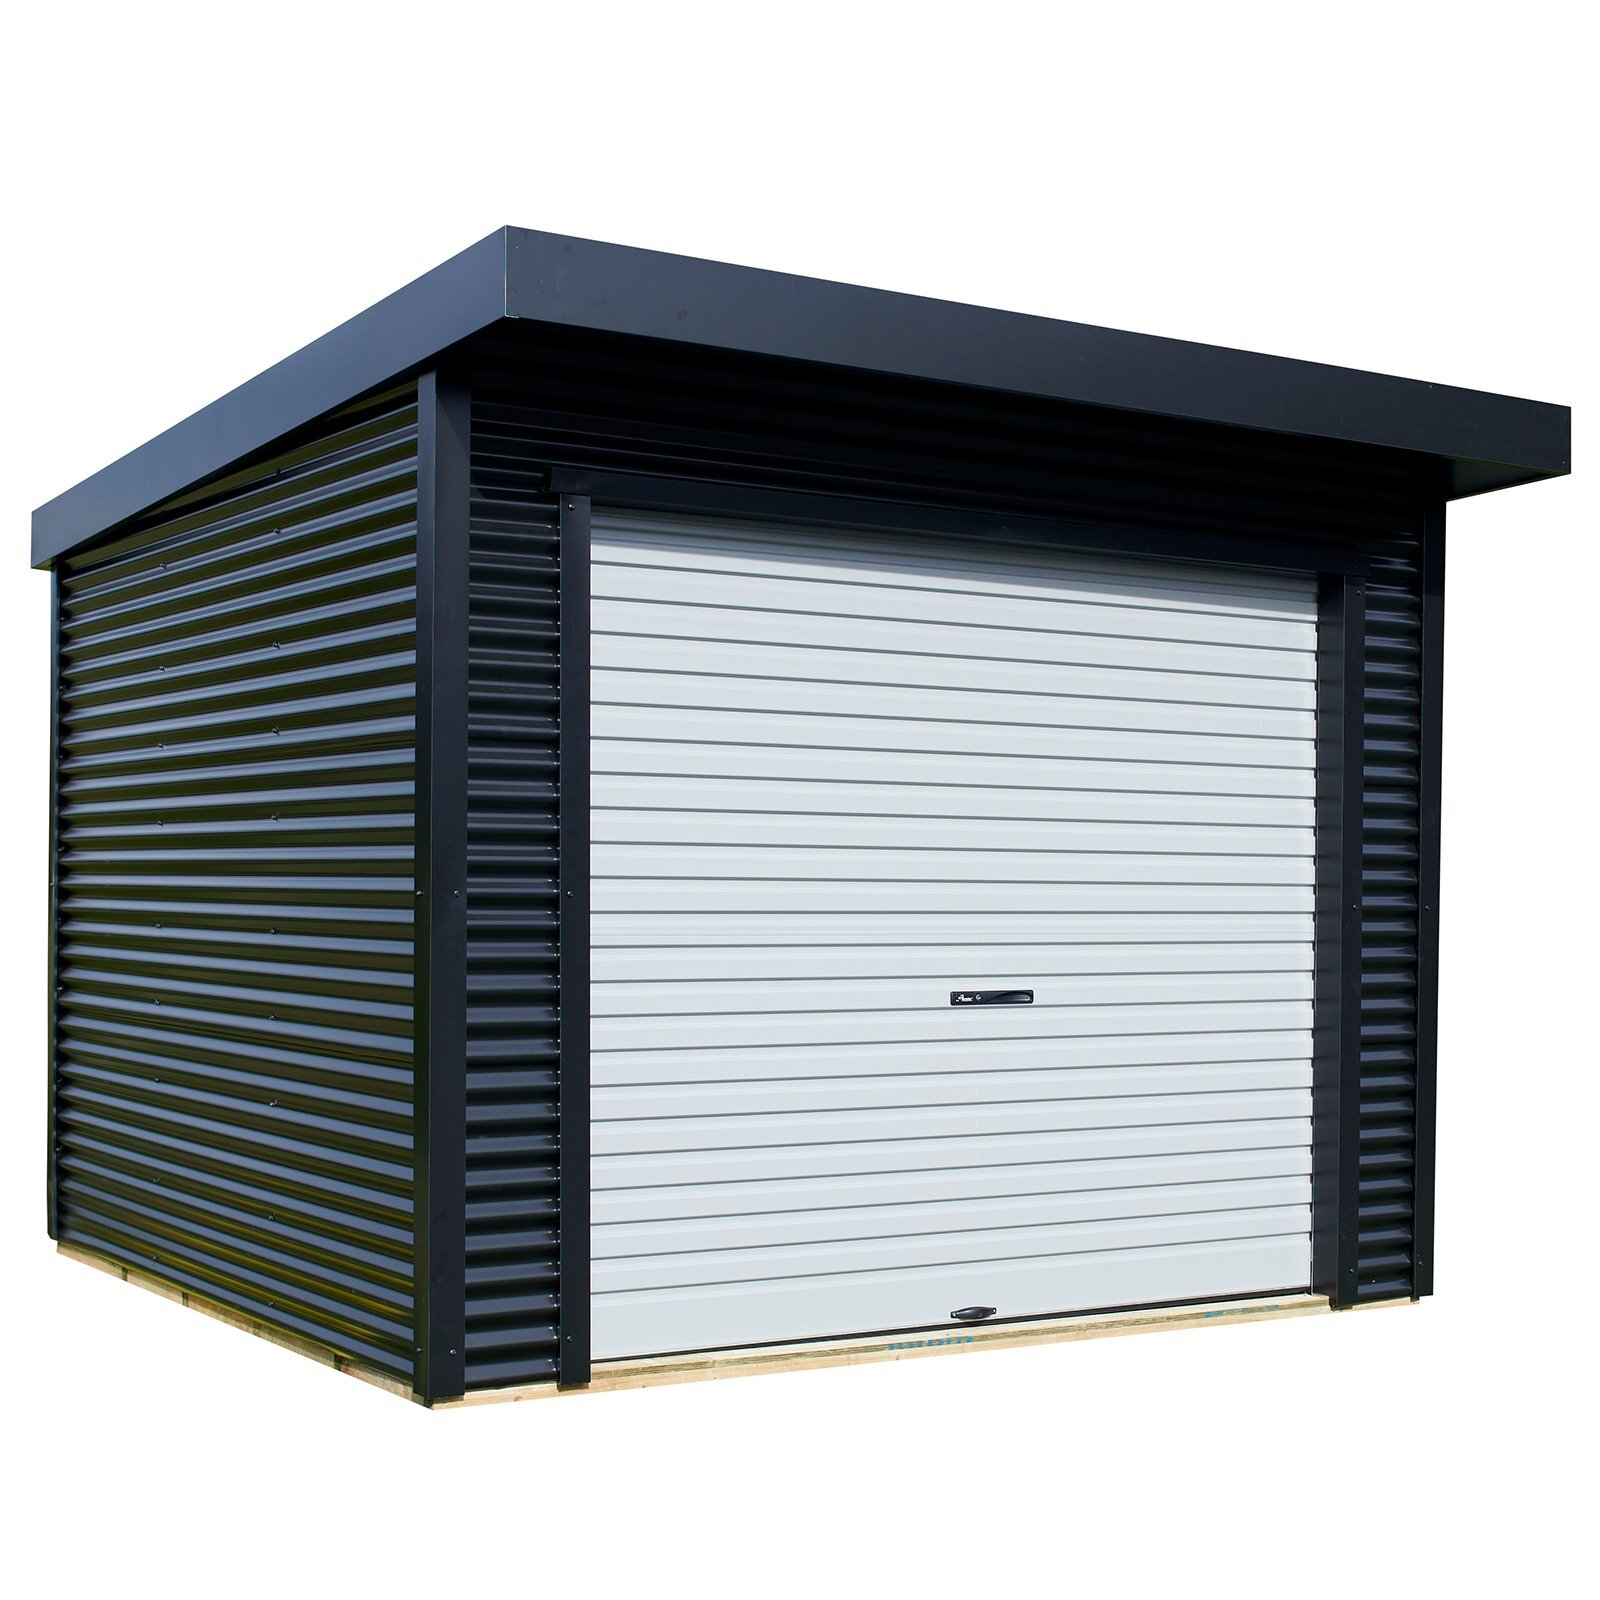 Duratuf 3.15 x 3.15m Lifestyle Marlborough Pre Painted Steel Shed